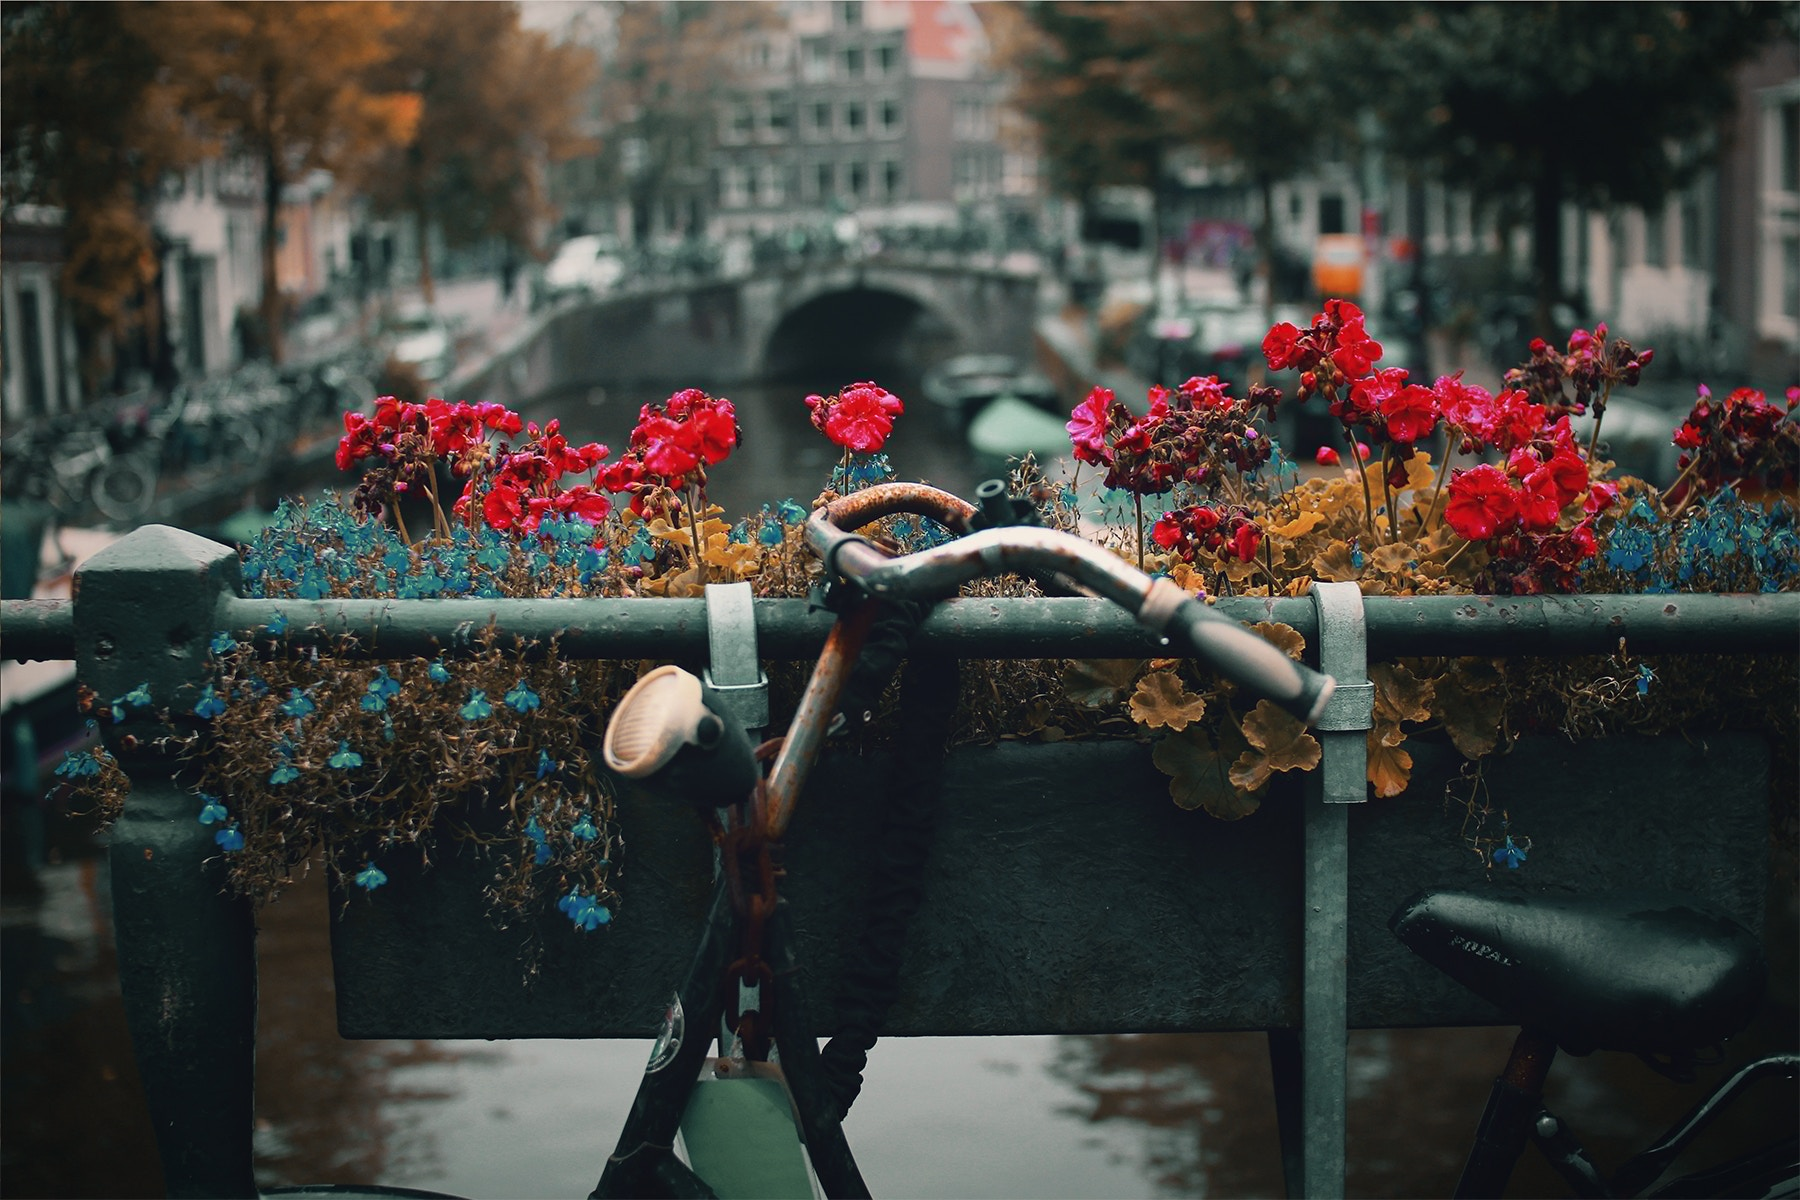 Us visiting Amsterdam on a budget